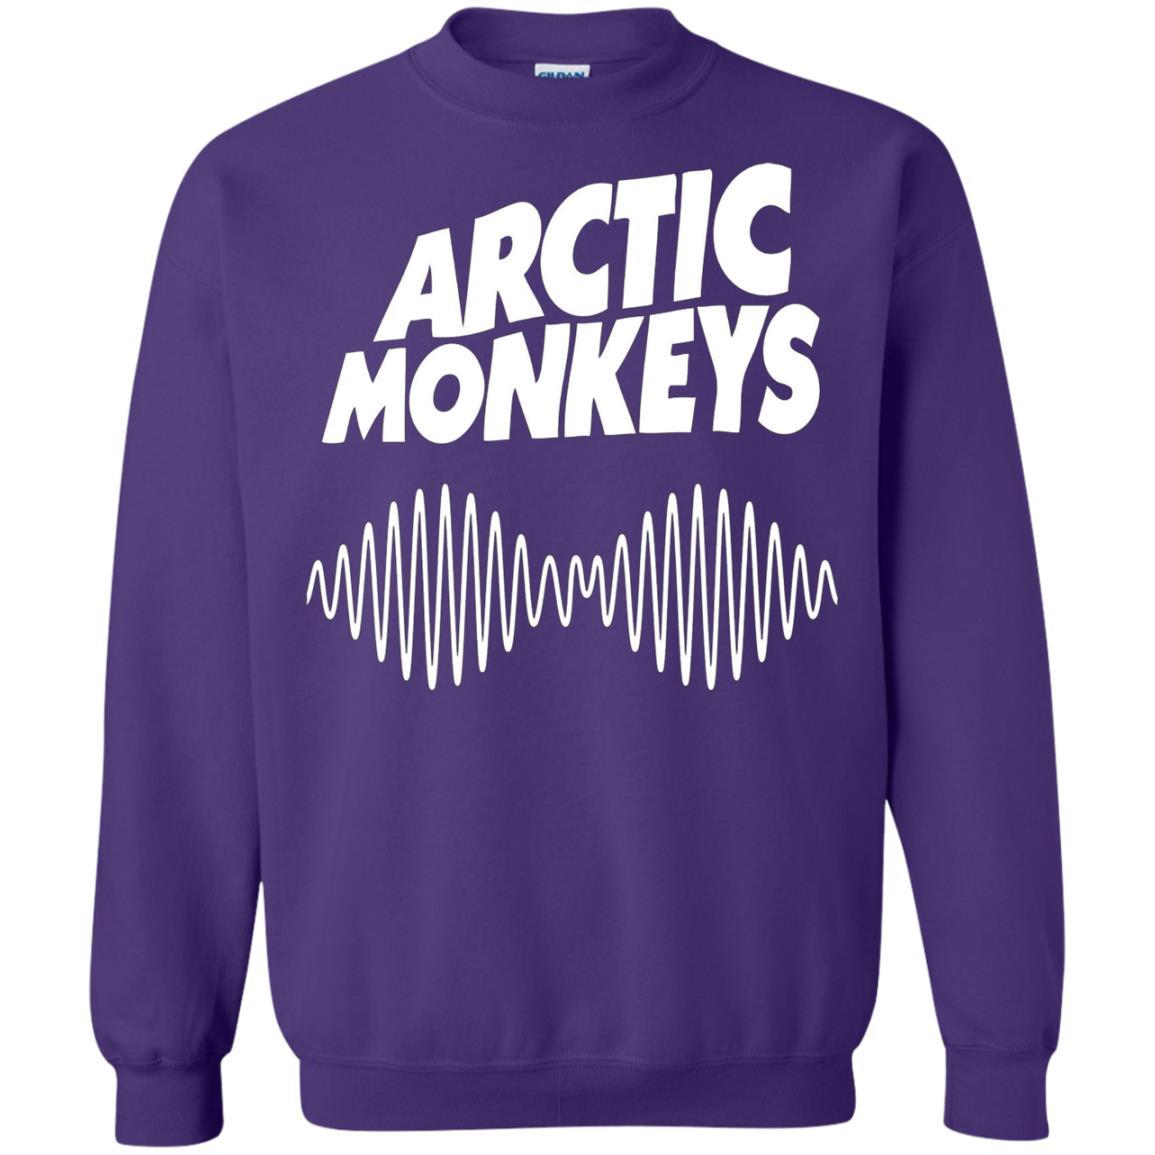 Artic Monkeys Soundwave Music Band Tshirt Purple / 5XL